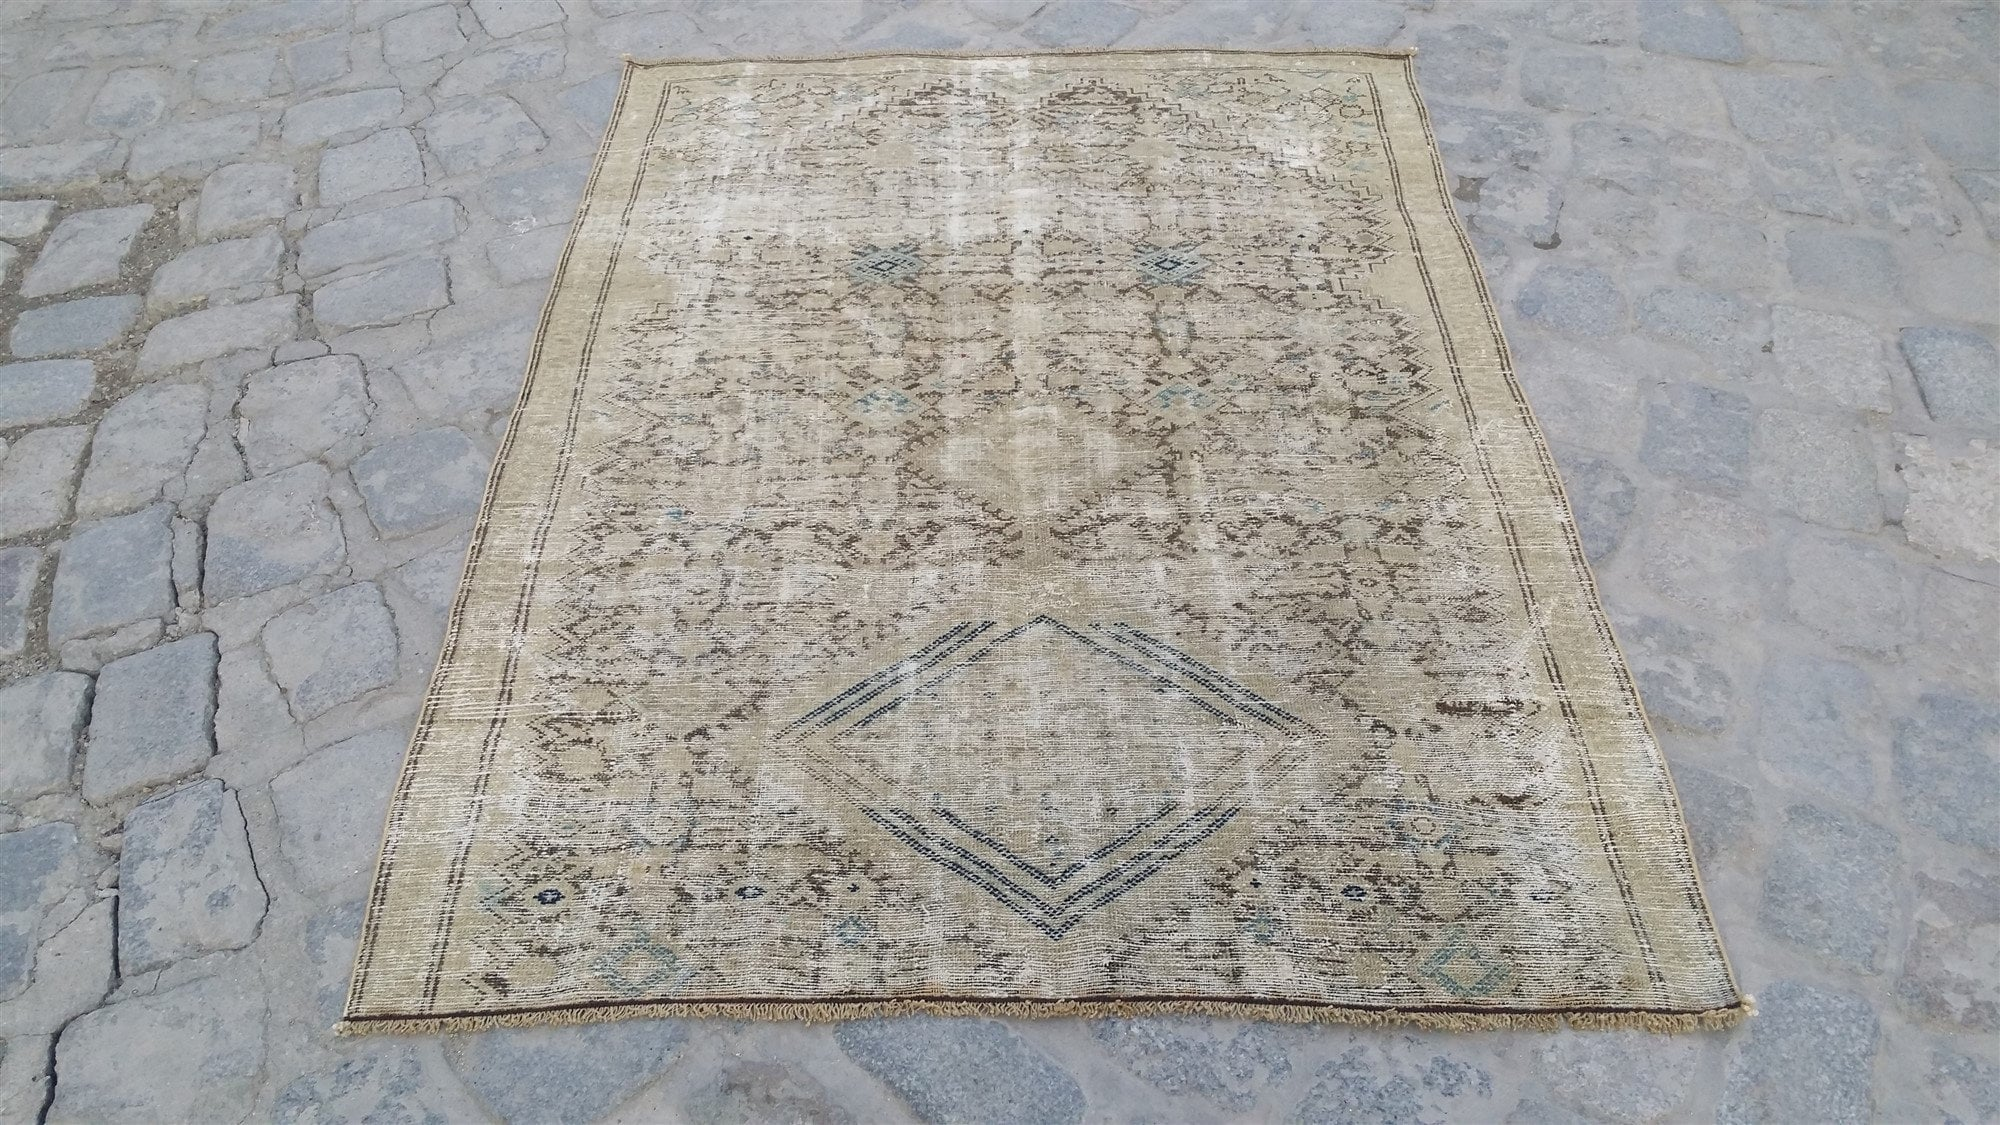 Shabby Chic Rug For The Living Room 5 6 4 0 Ft Vintage Distressed Rug Boho Faded Rug Pastel Rustic Rug Antique Persian Area Rug Turkey